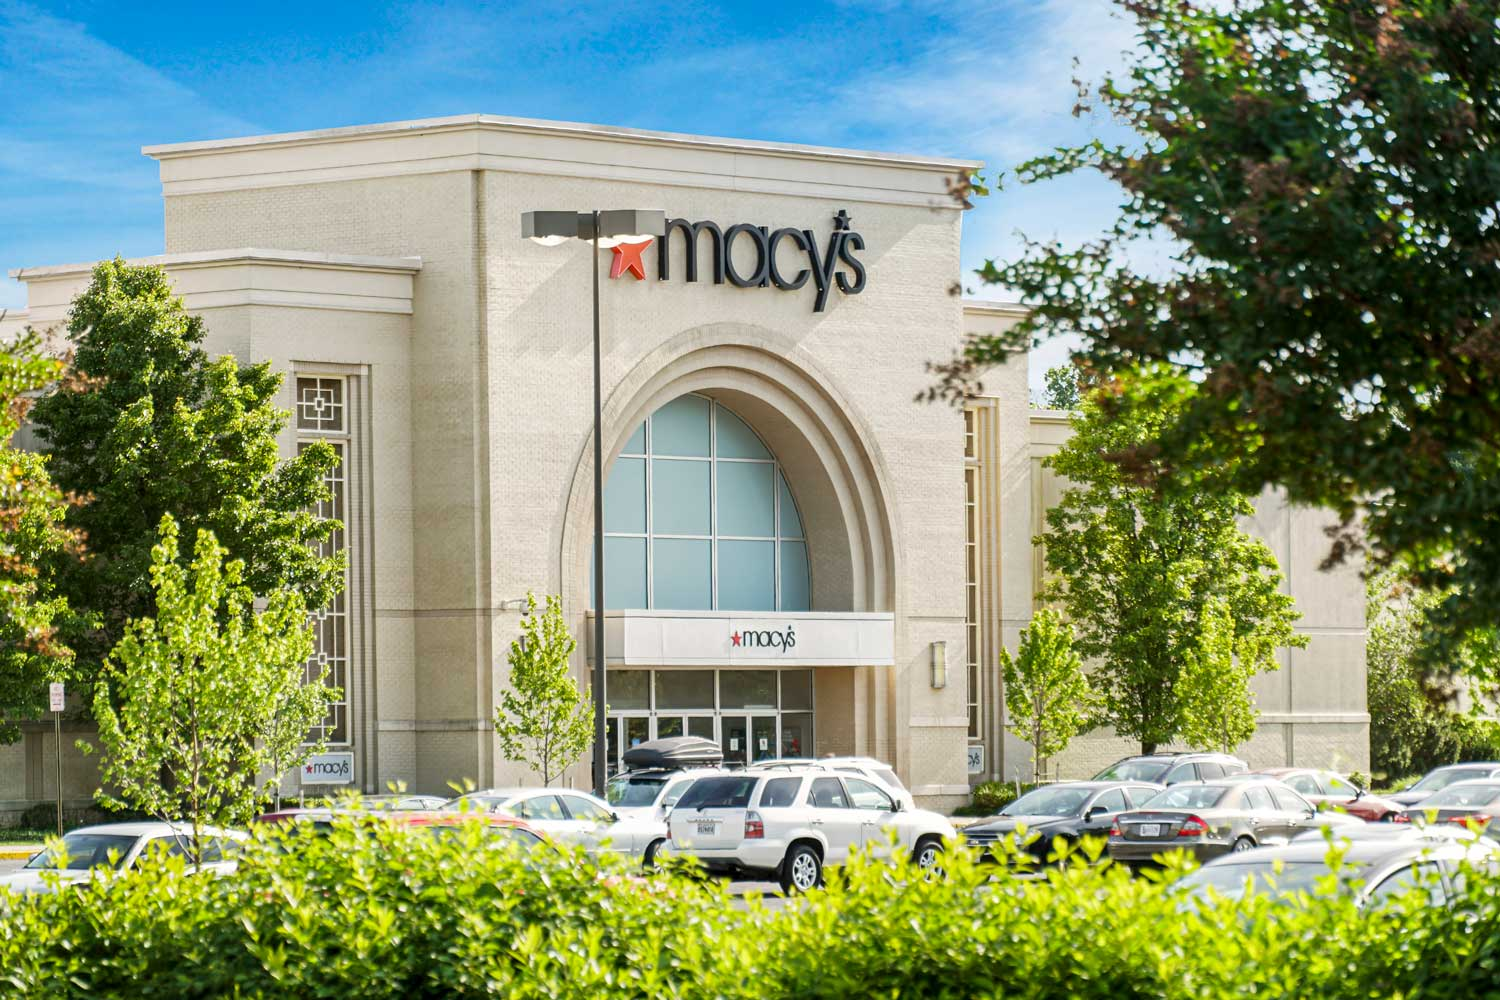 Macy's 10 minutes from Carrollon Manor Apartments in New Carrollton, MD